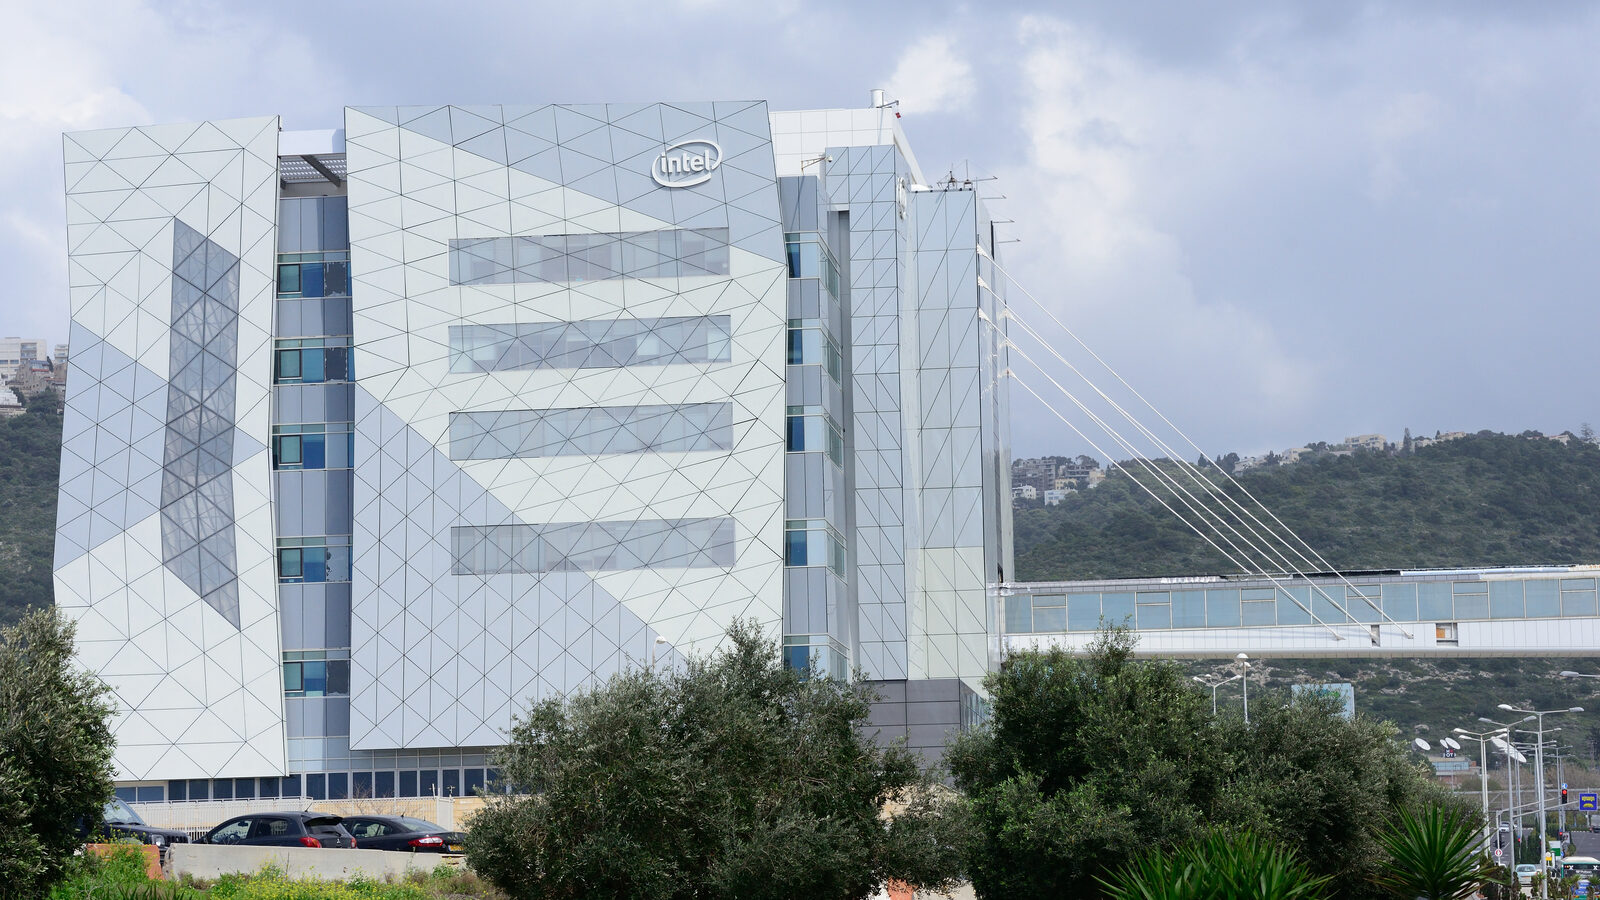 Israel Tech Operations Boosted By Intel's $600 Million Investment